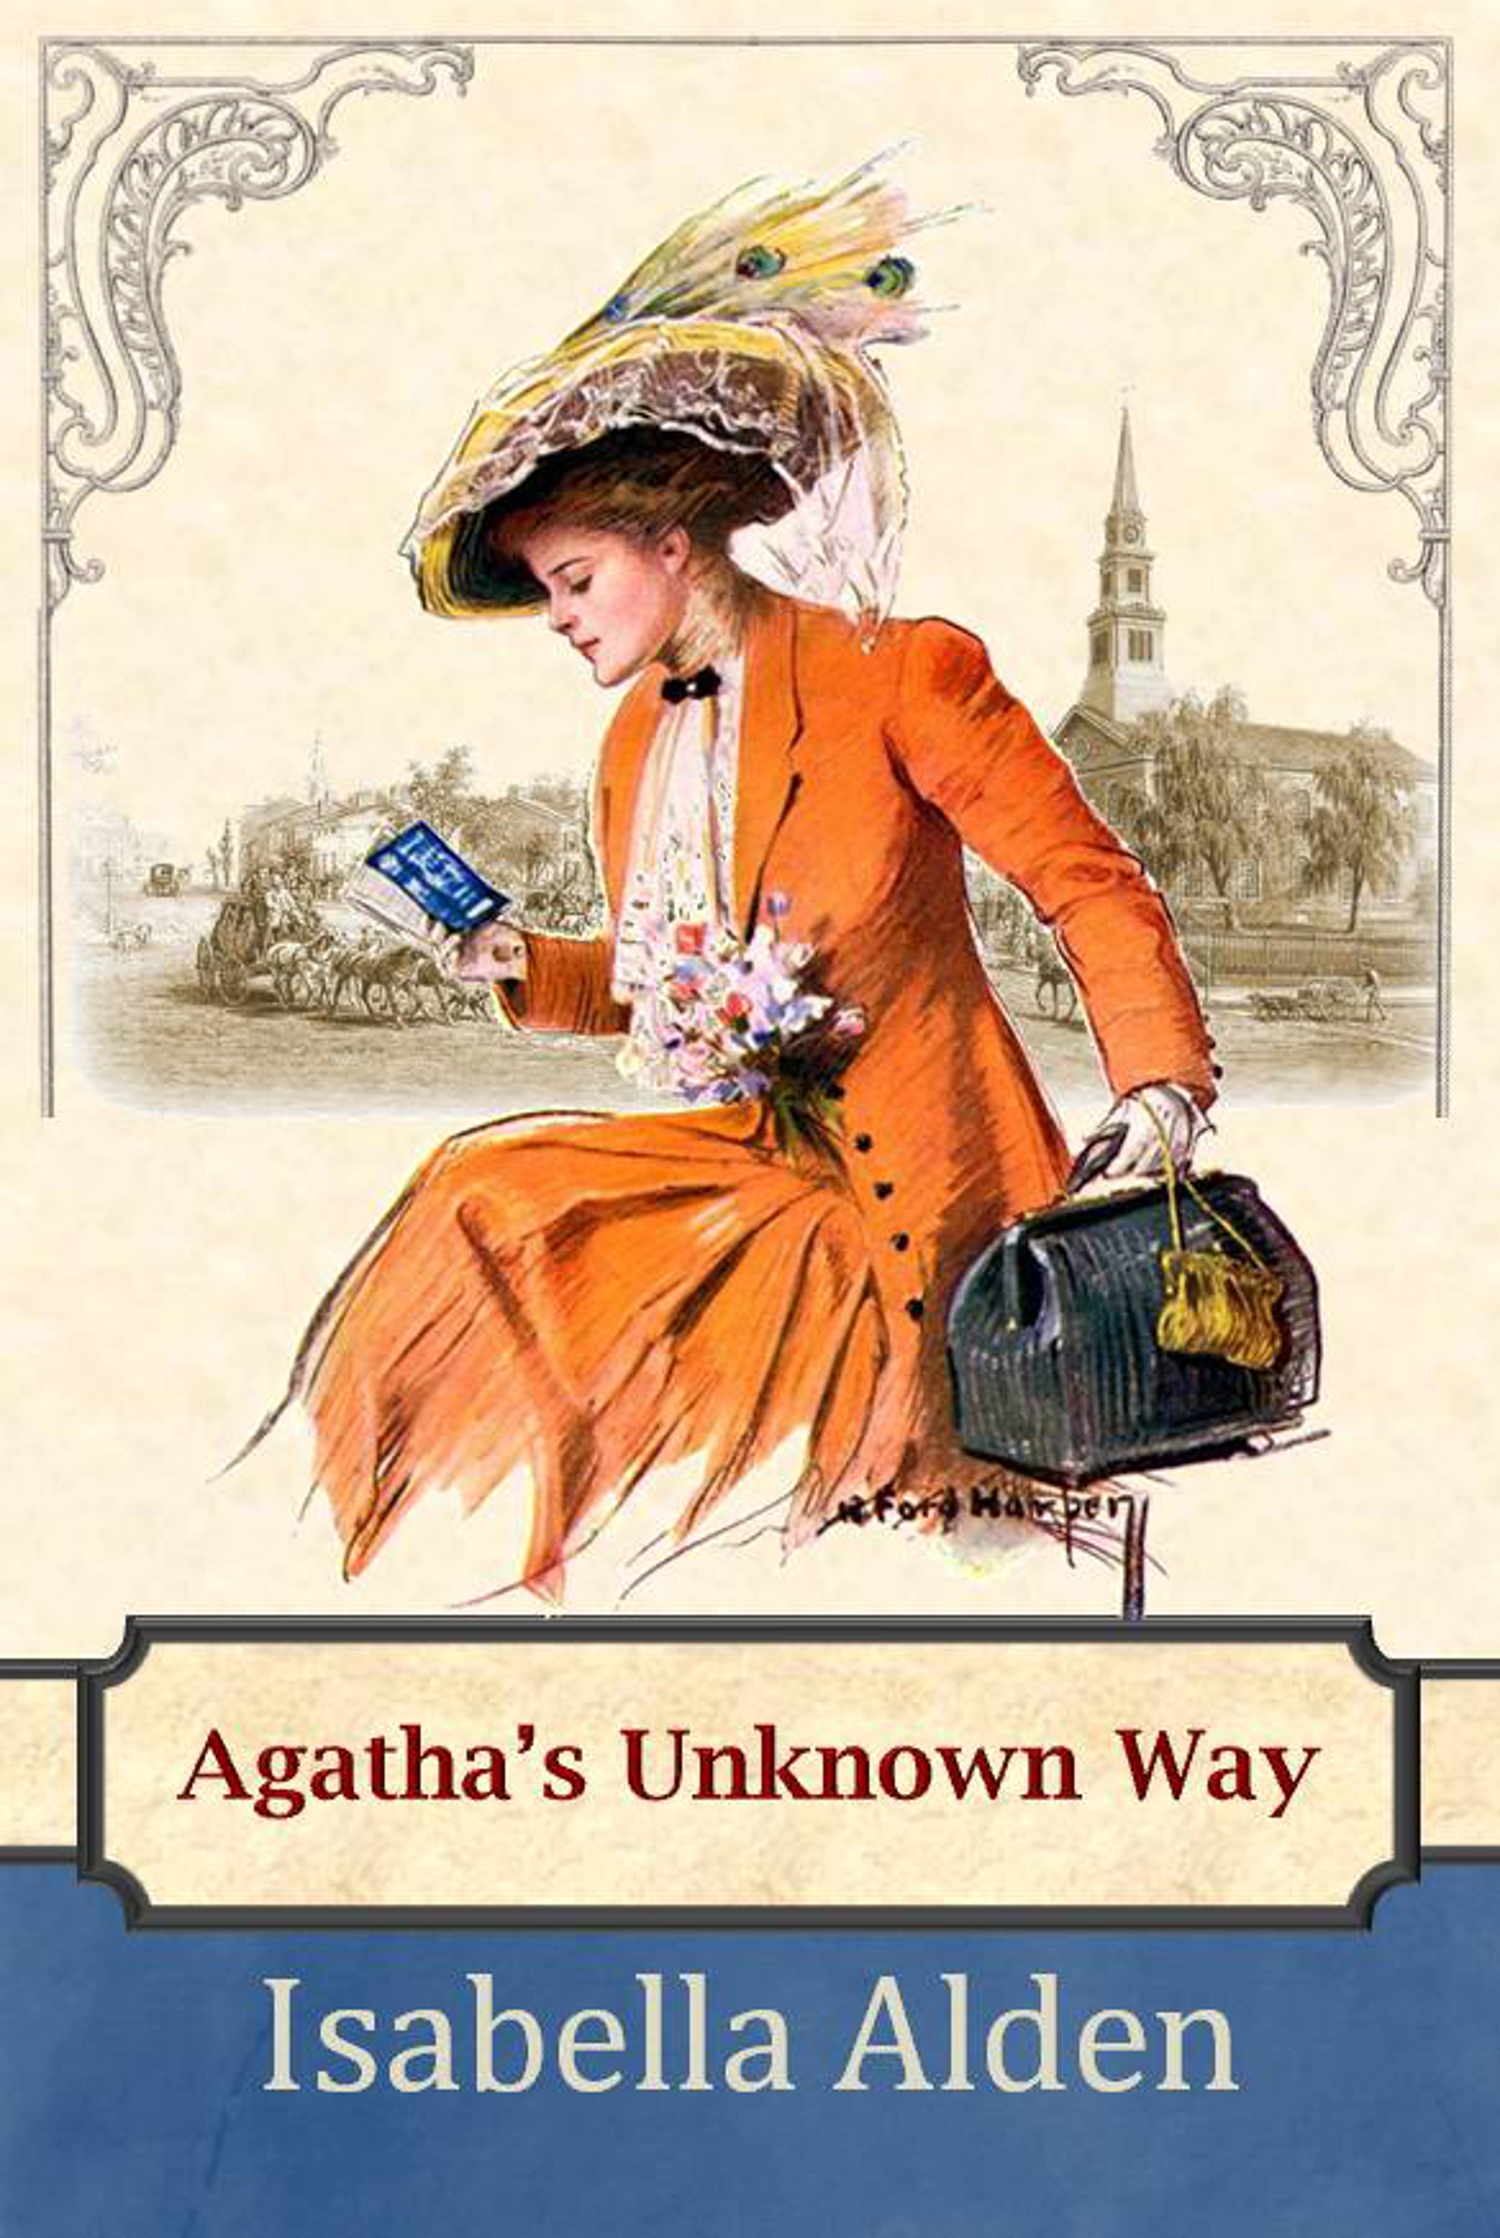 Image of Cover for Agatha's Unknown Way